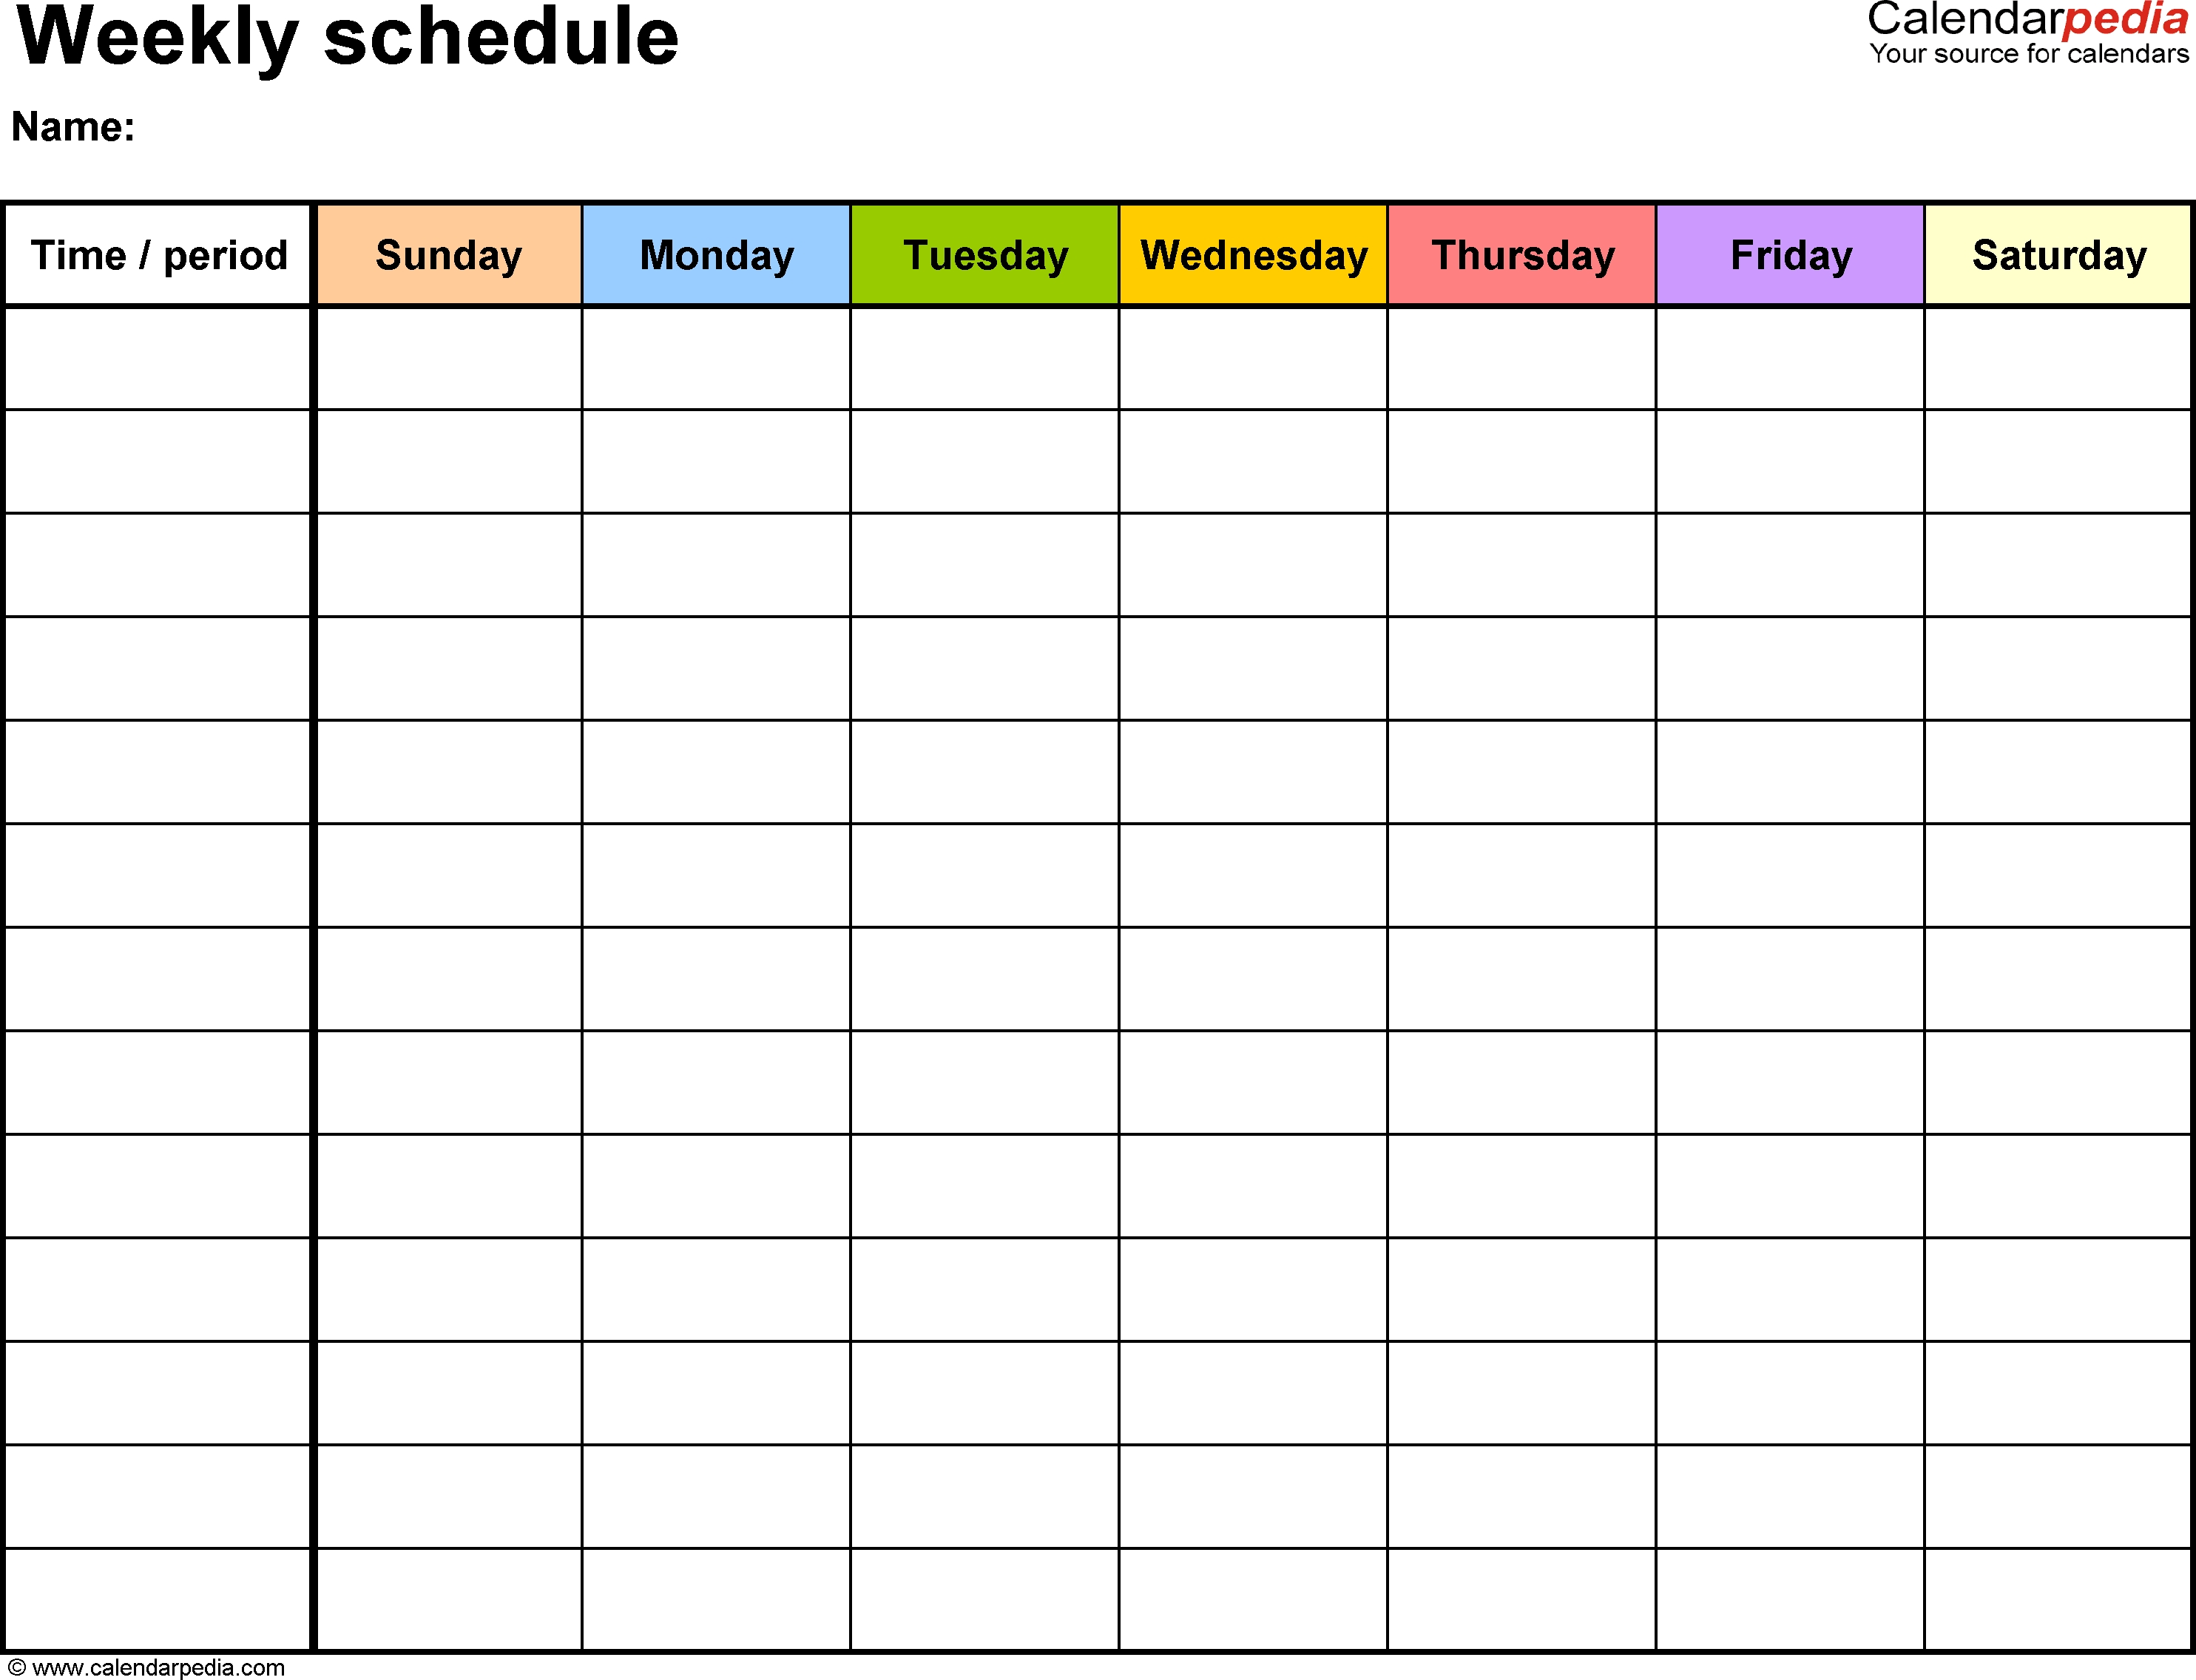 Free Weekly Schedule Templates For Word - 18 Templates_7 Day Calendar Blank